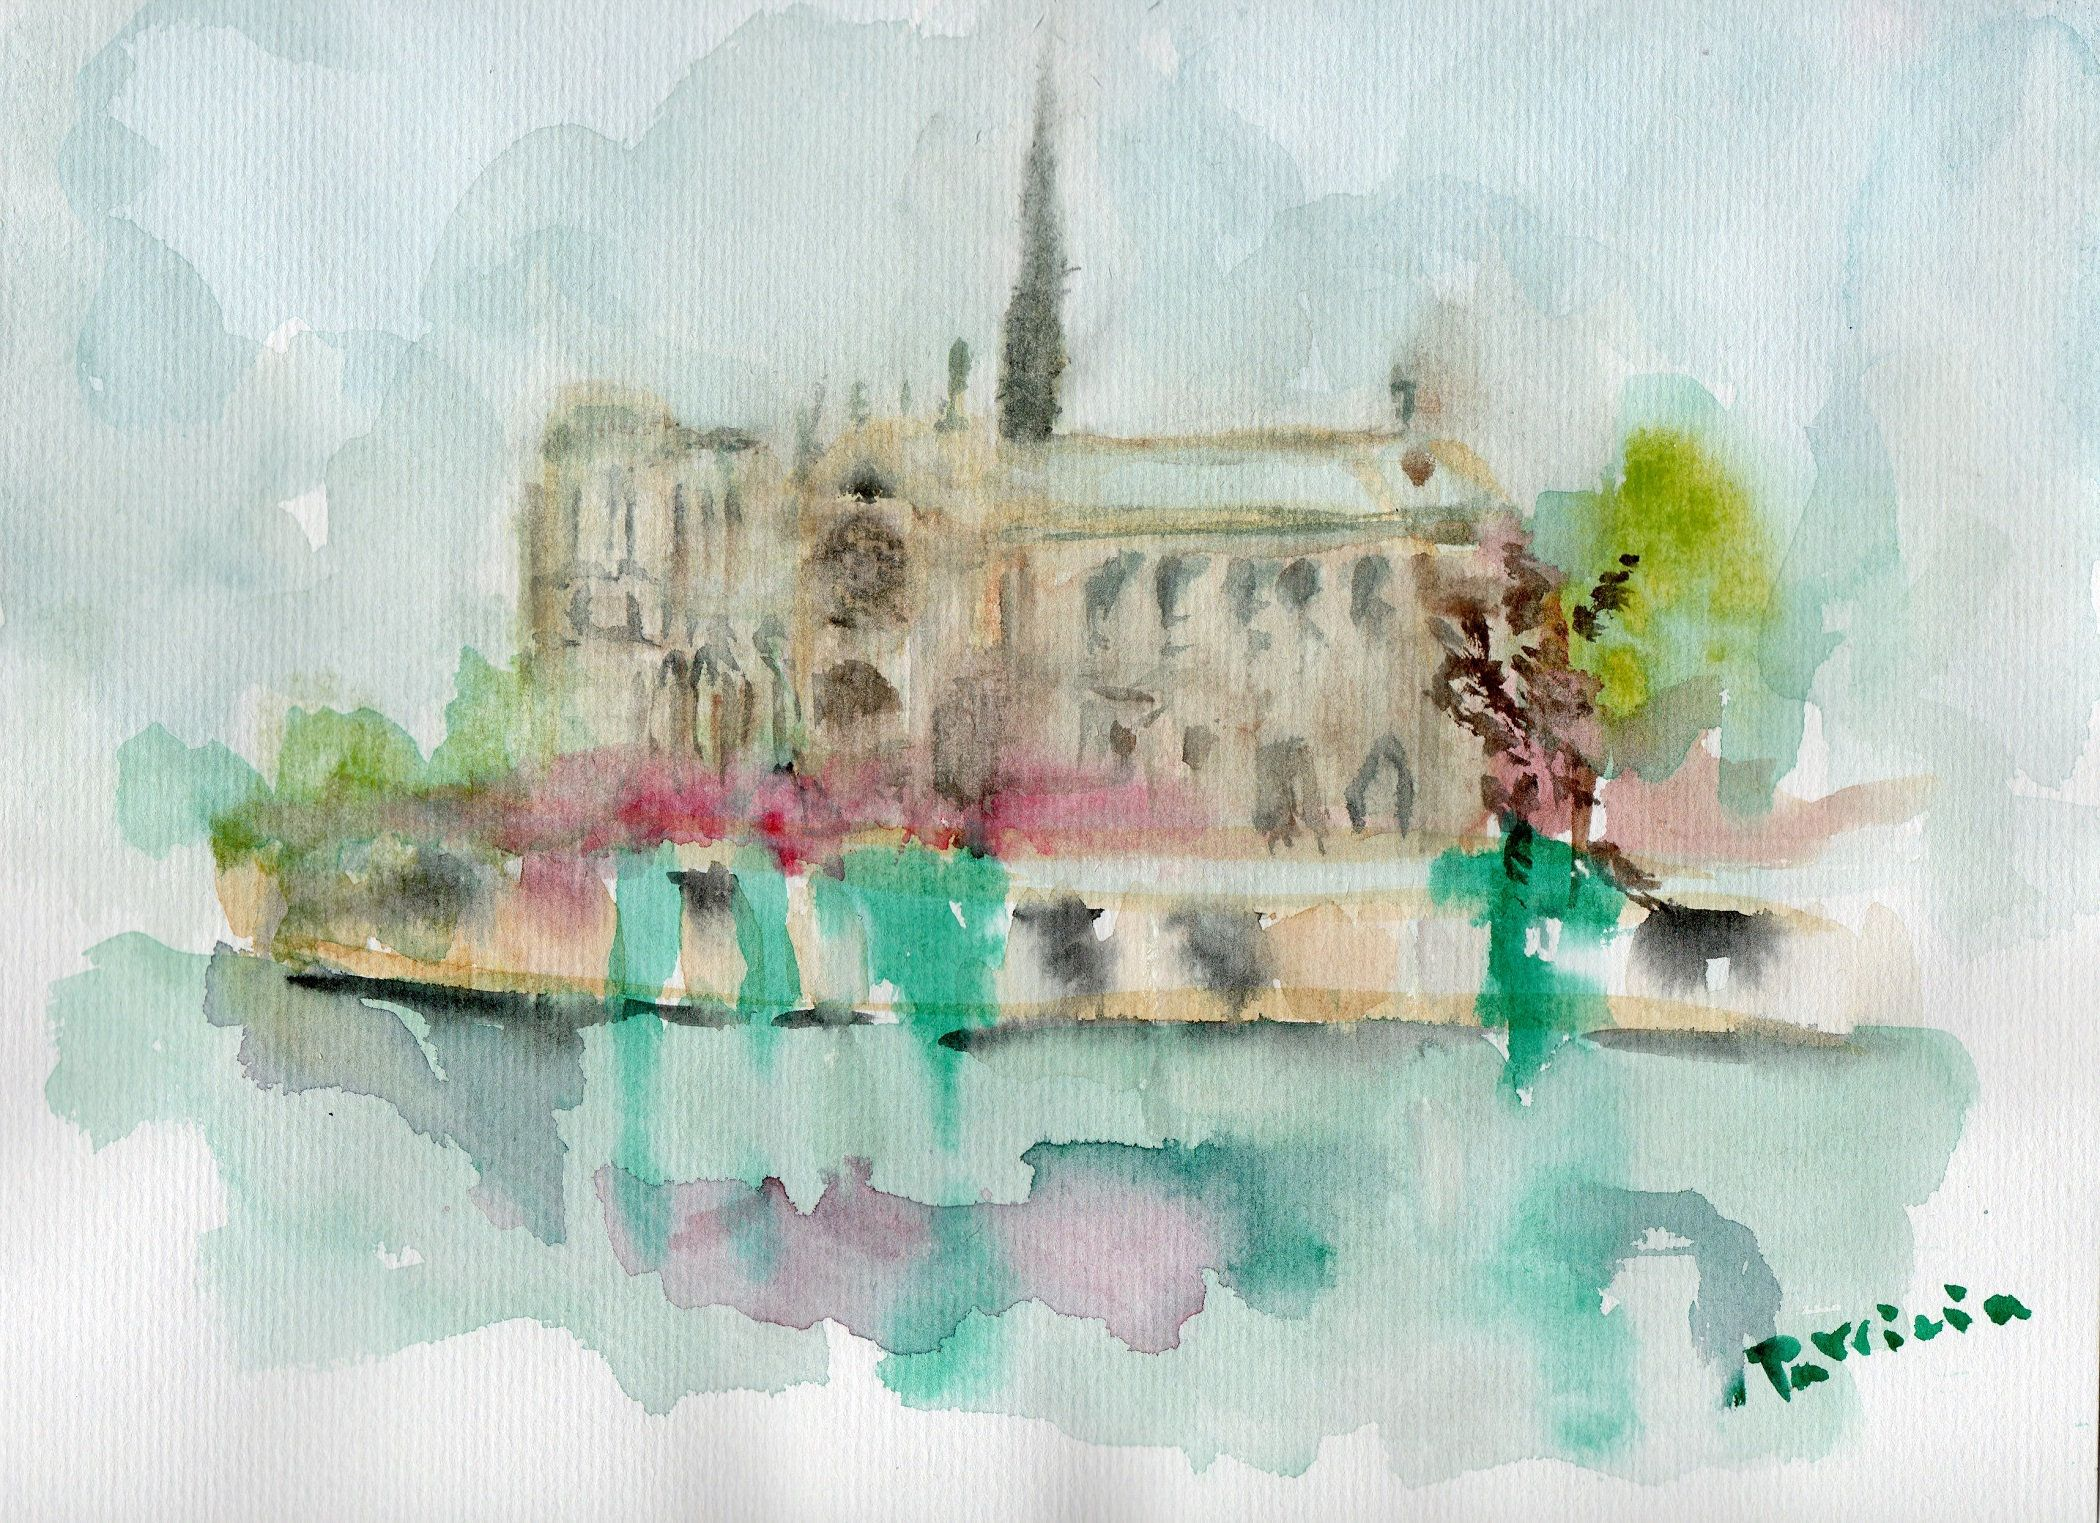 Wedding Gift Notre Dame De Paris Watercolor Painting Original